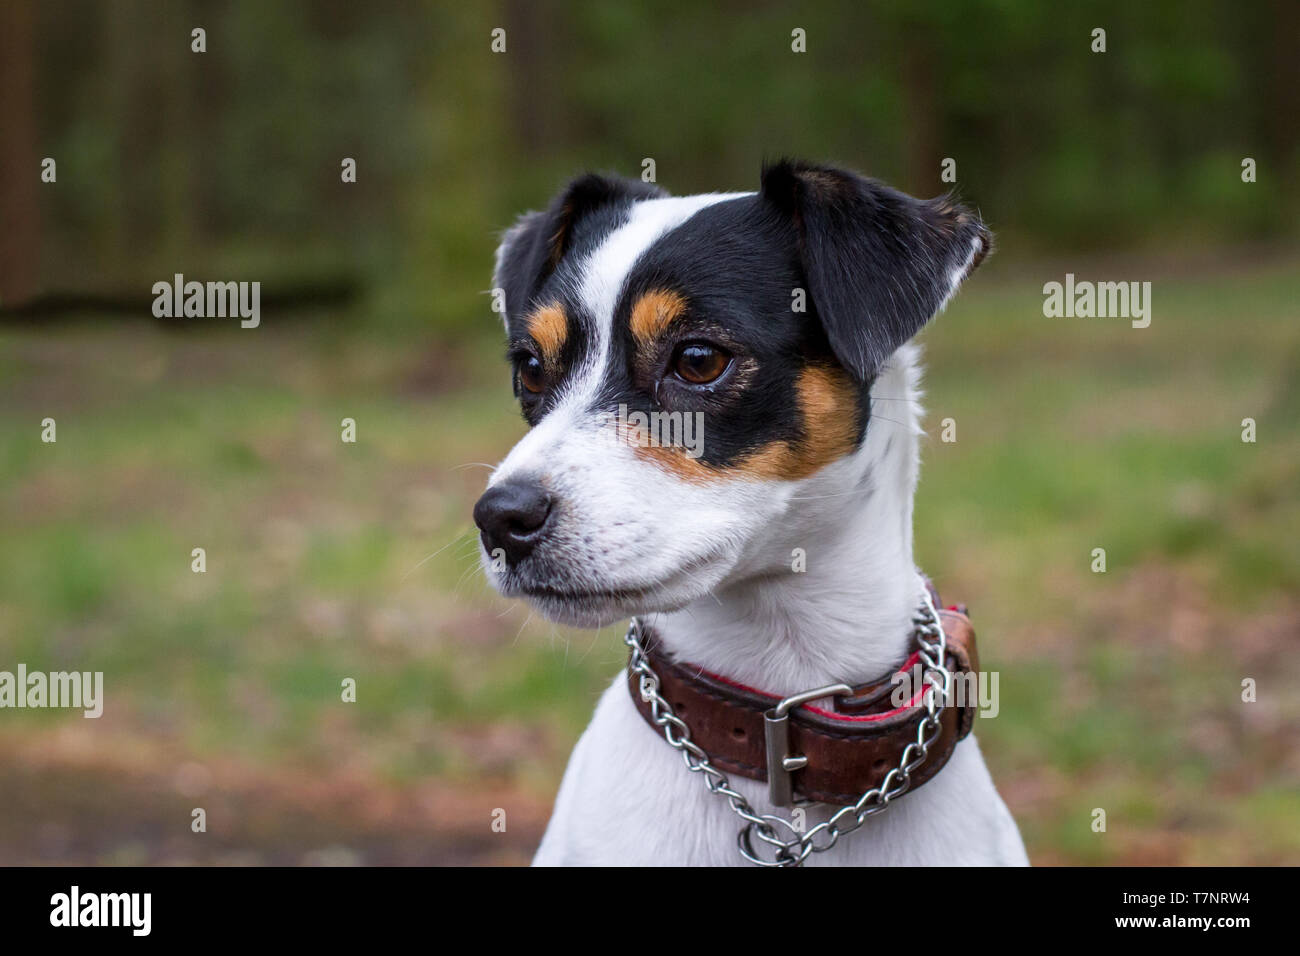 Parson Russell Terrier High Resolution Stock Photography And Images Alamy